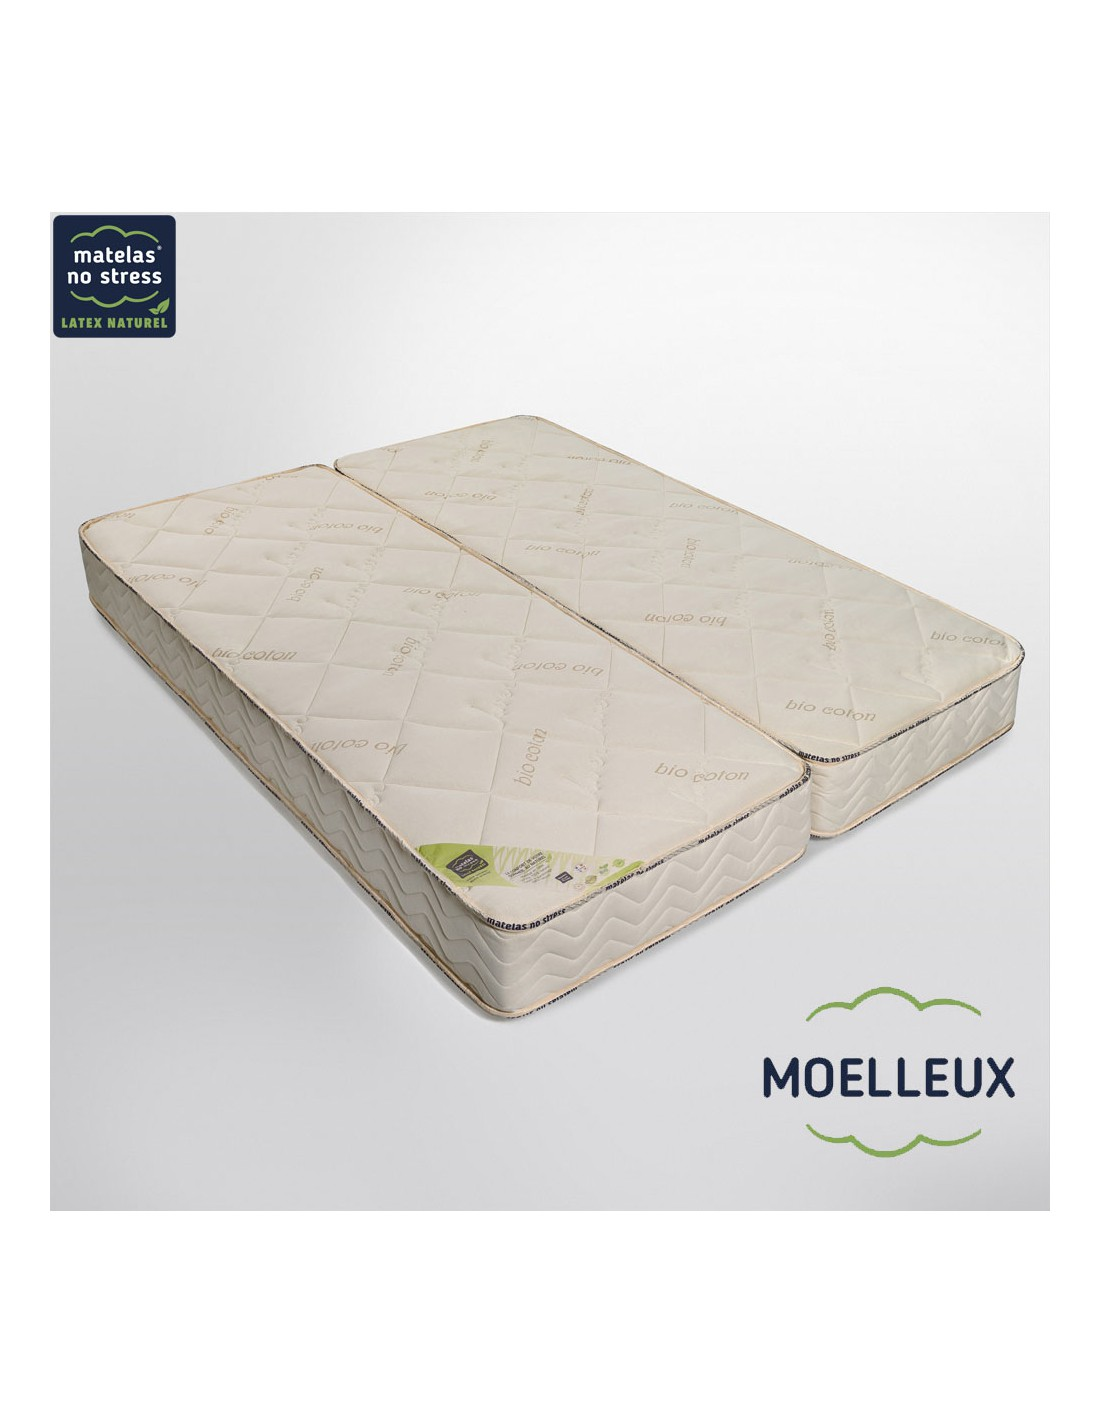 matelas latex naturel 2x80x190 reli s par un zip. Black Bedroom Furniture Sets. Home Design Ideas